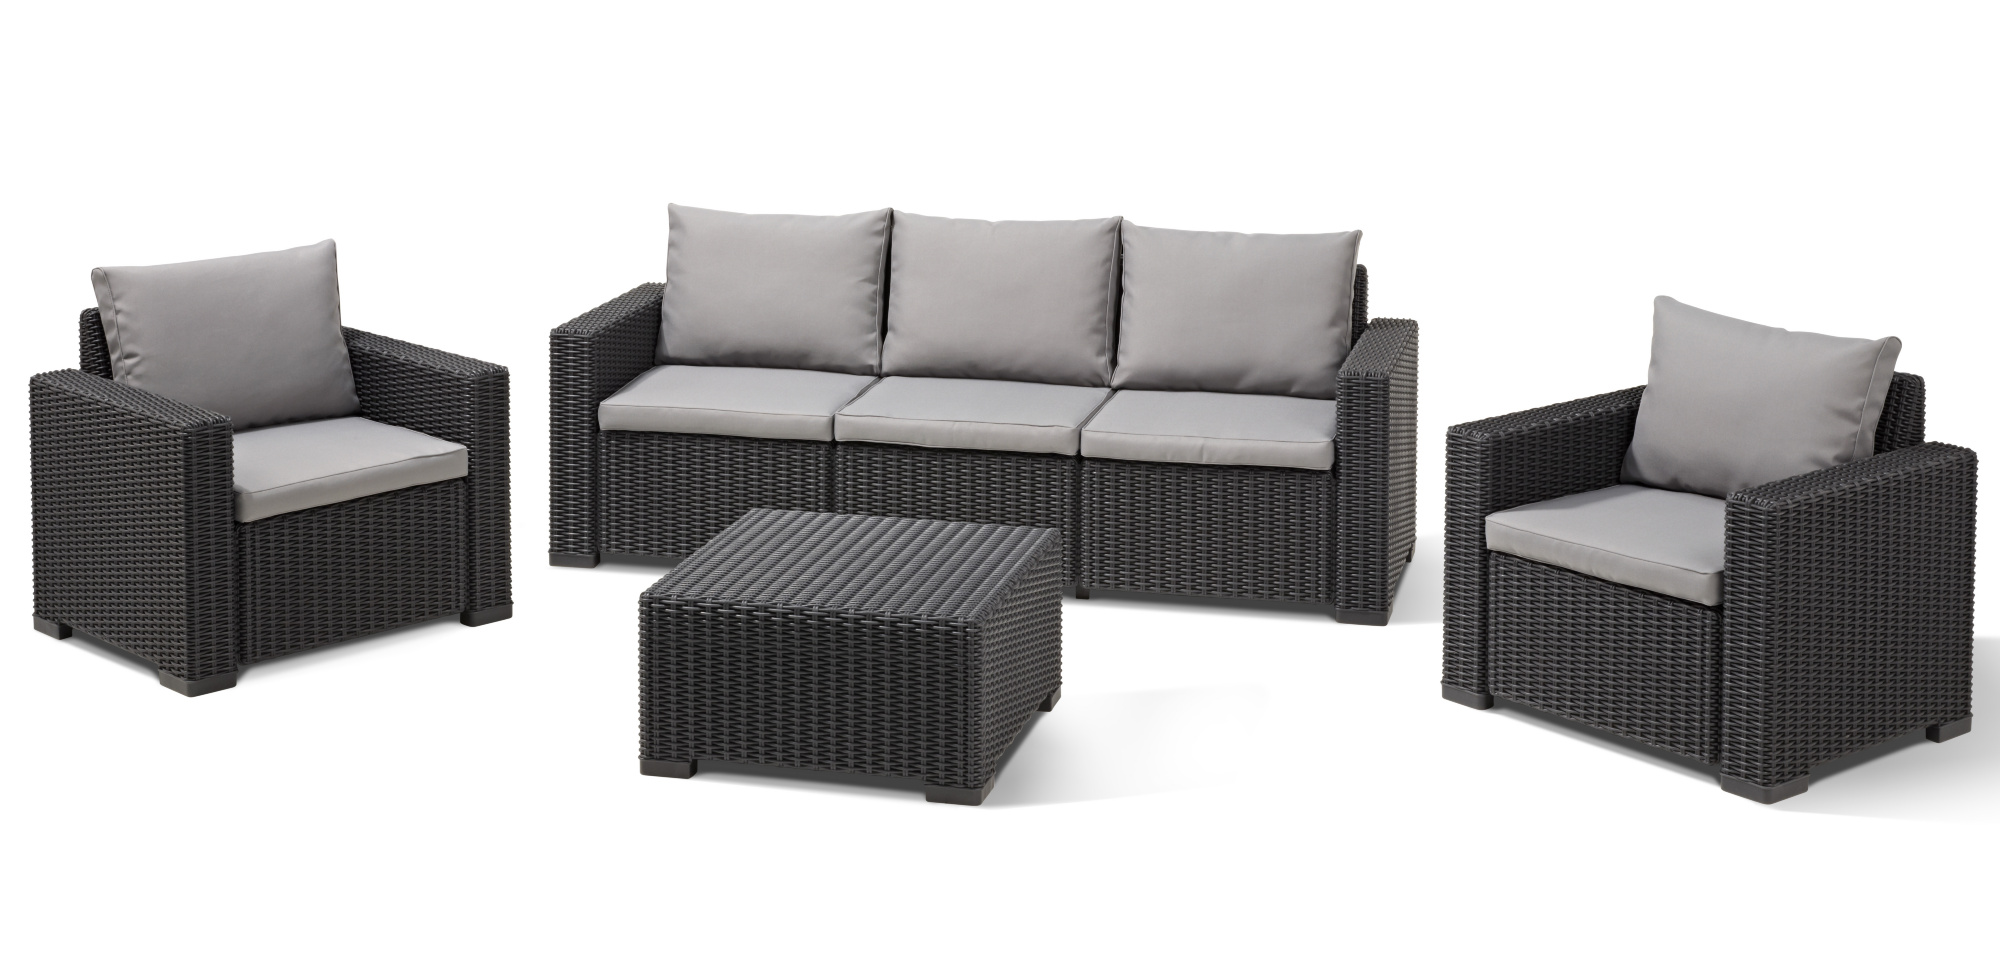 Allibert california lounge set graphite three seater for Table chaise encastrable pas cher